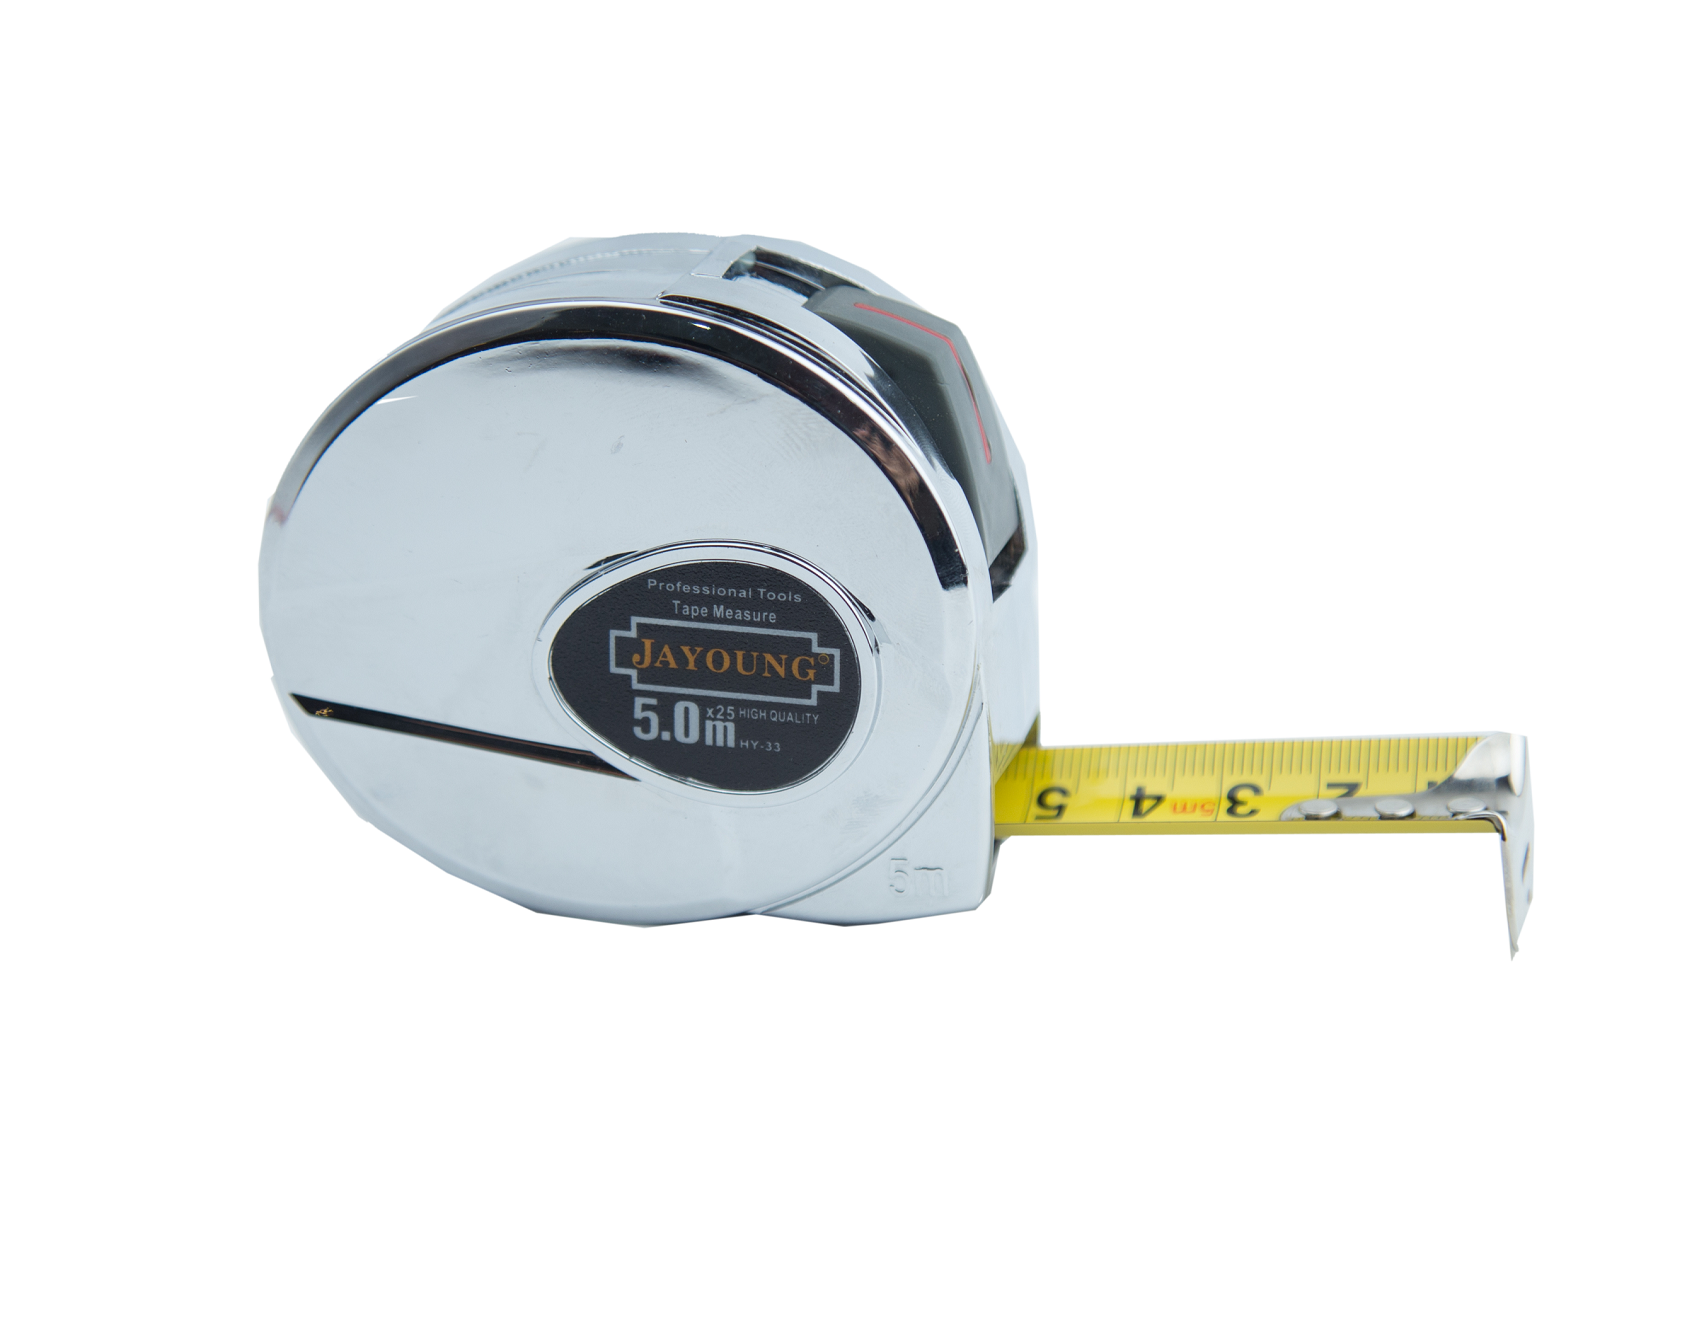 UV tape measure